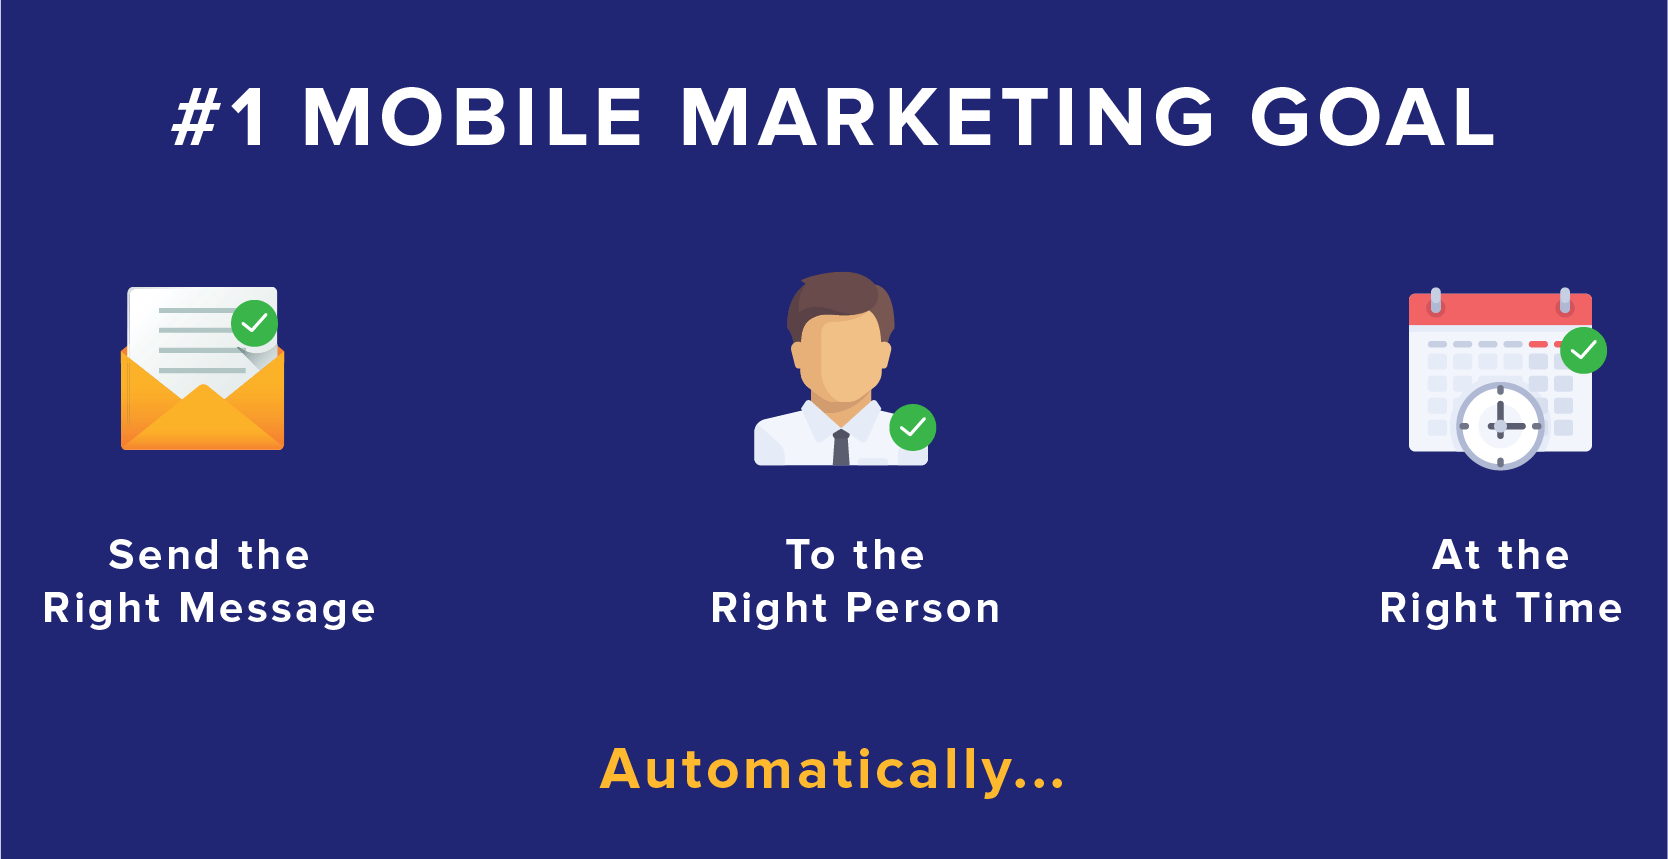 Mobile Marketing Goals